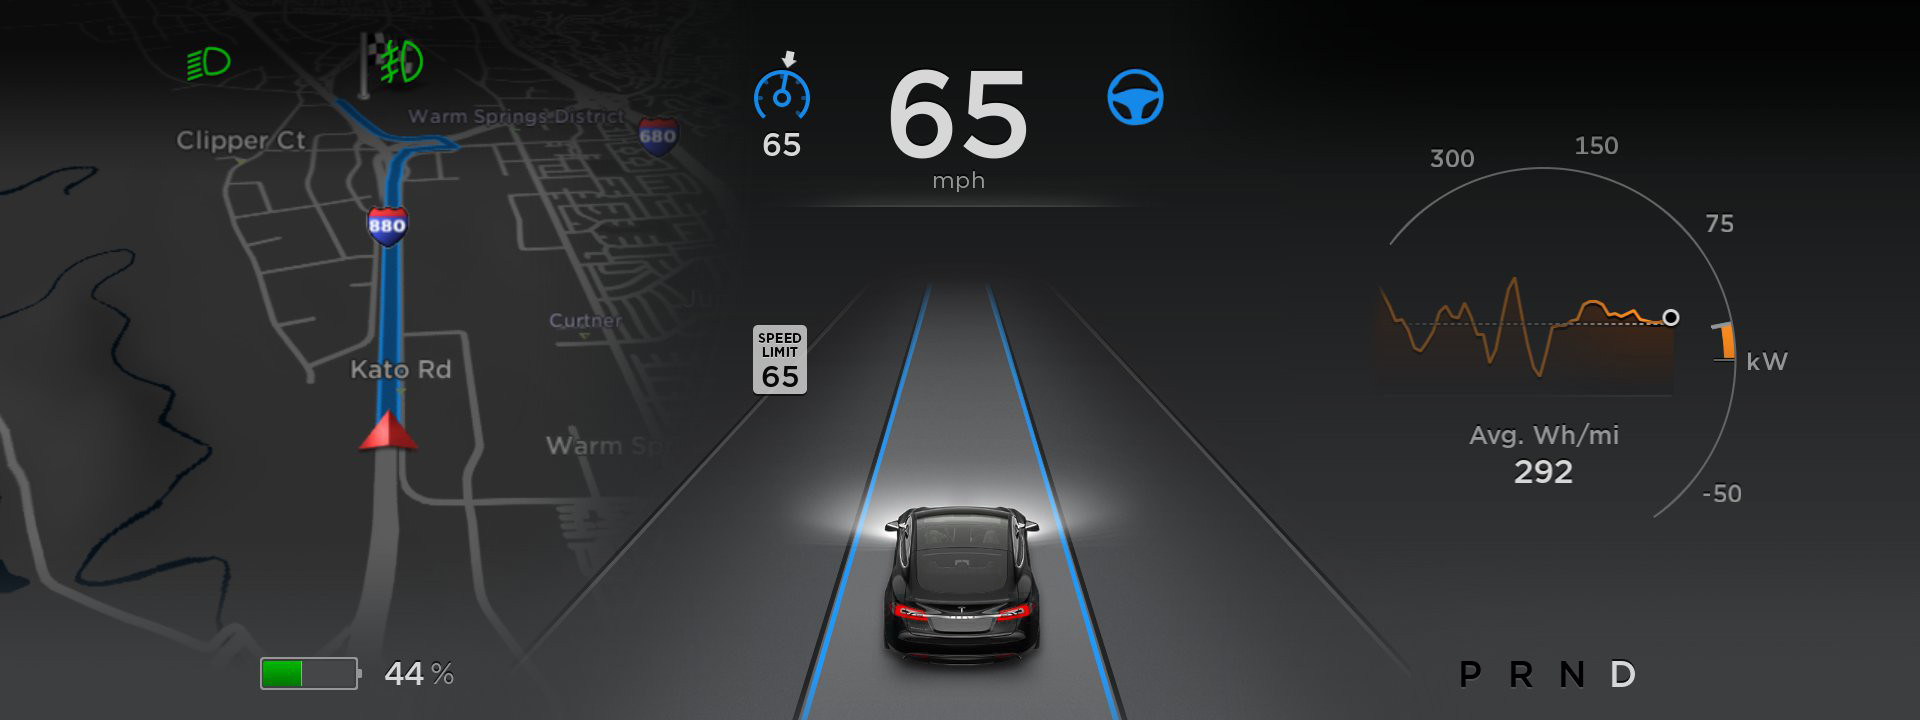 Tesla, self-driving car, autopilot, autonomous vehicle